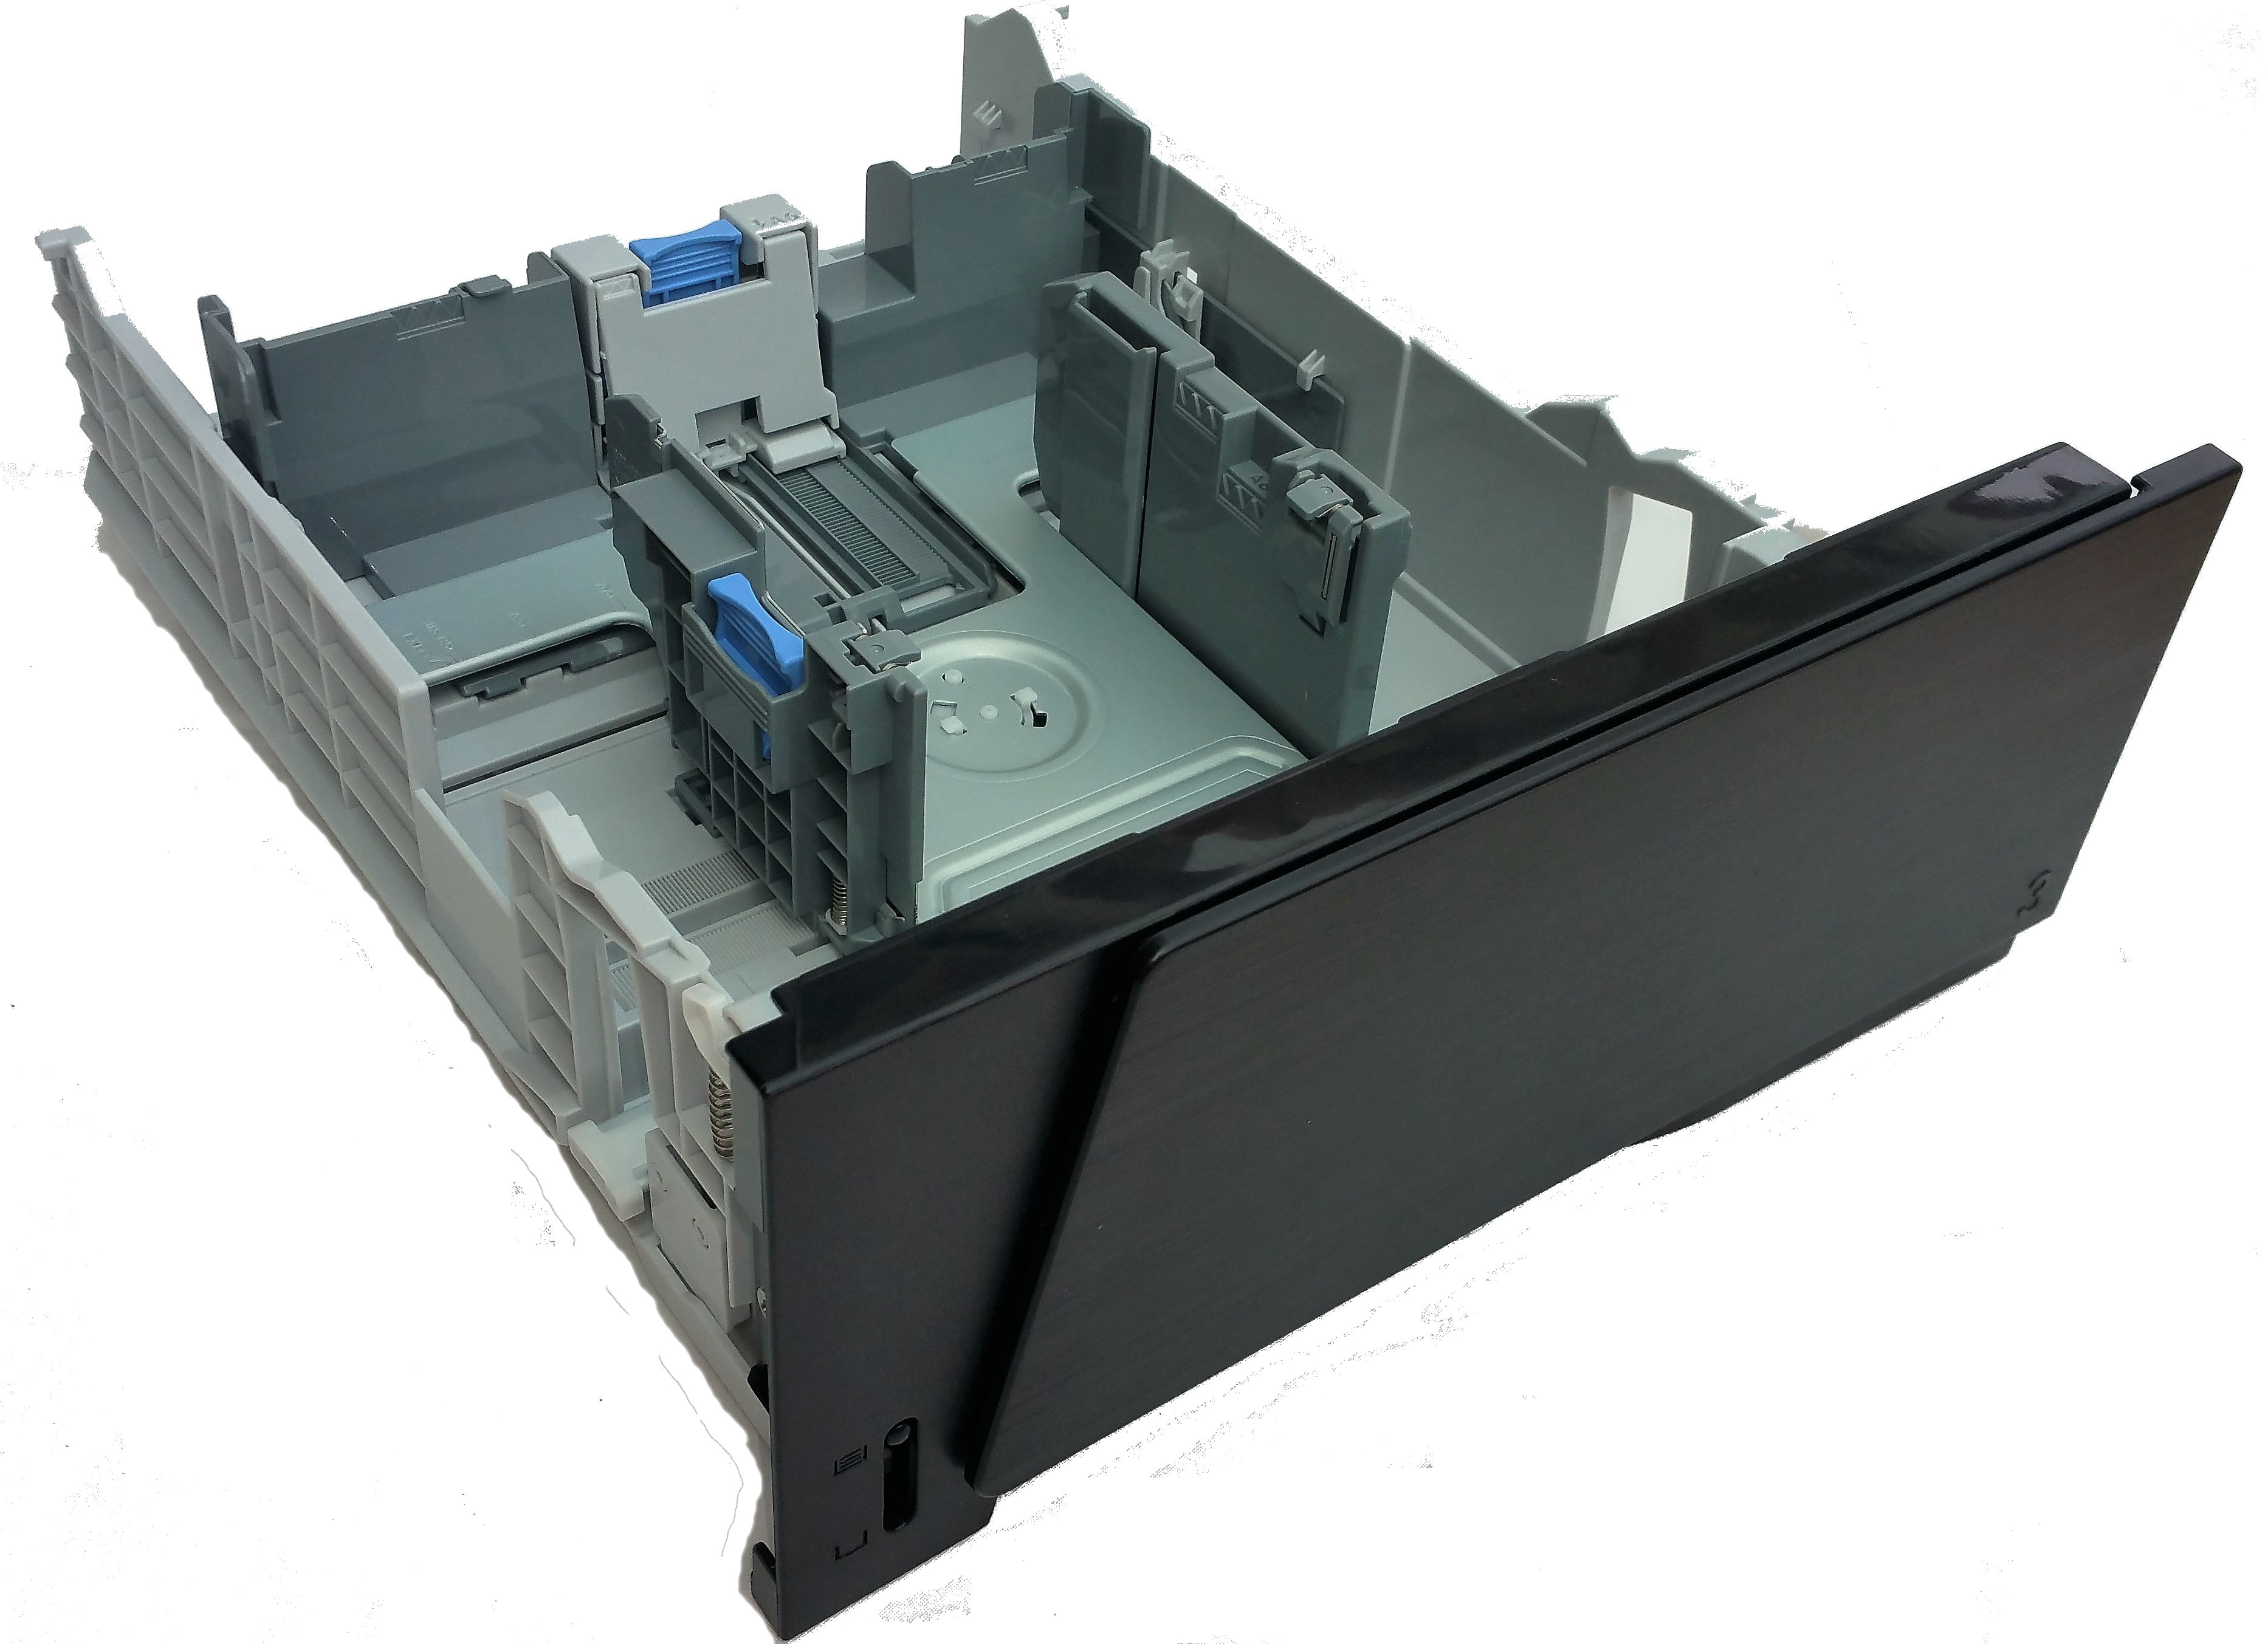 500-sheet paper tray/cassette for Optional tray 3 does not include feeder slot